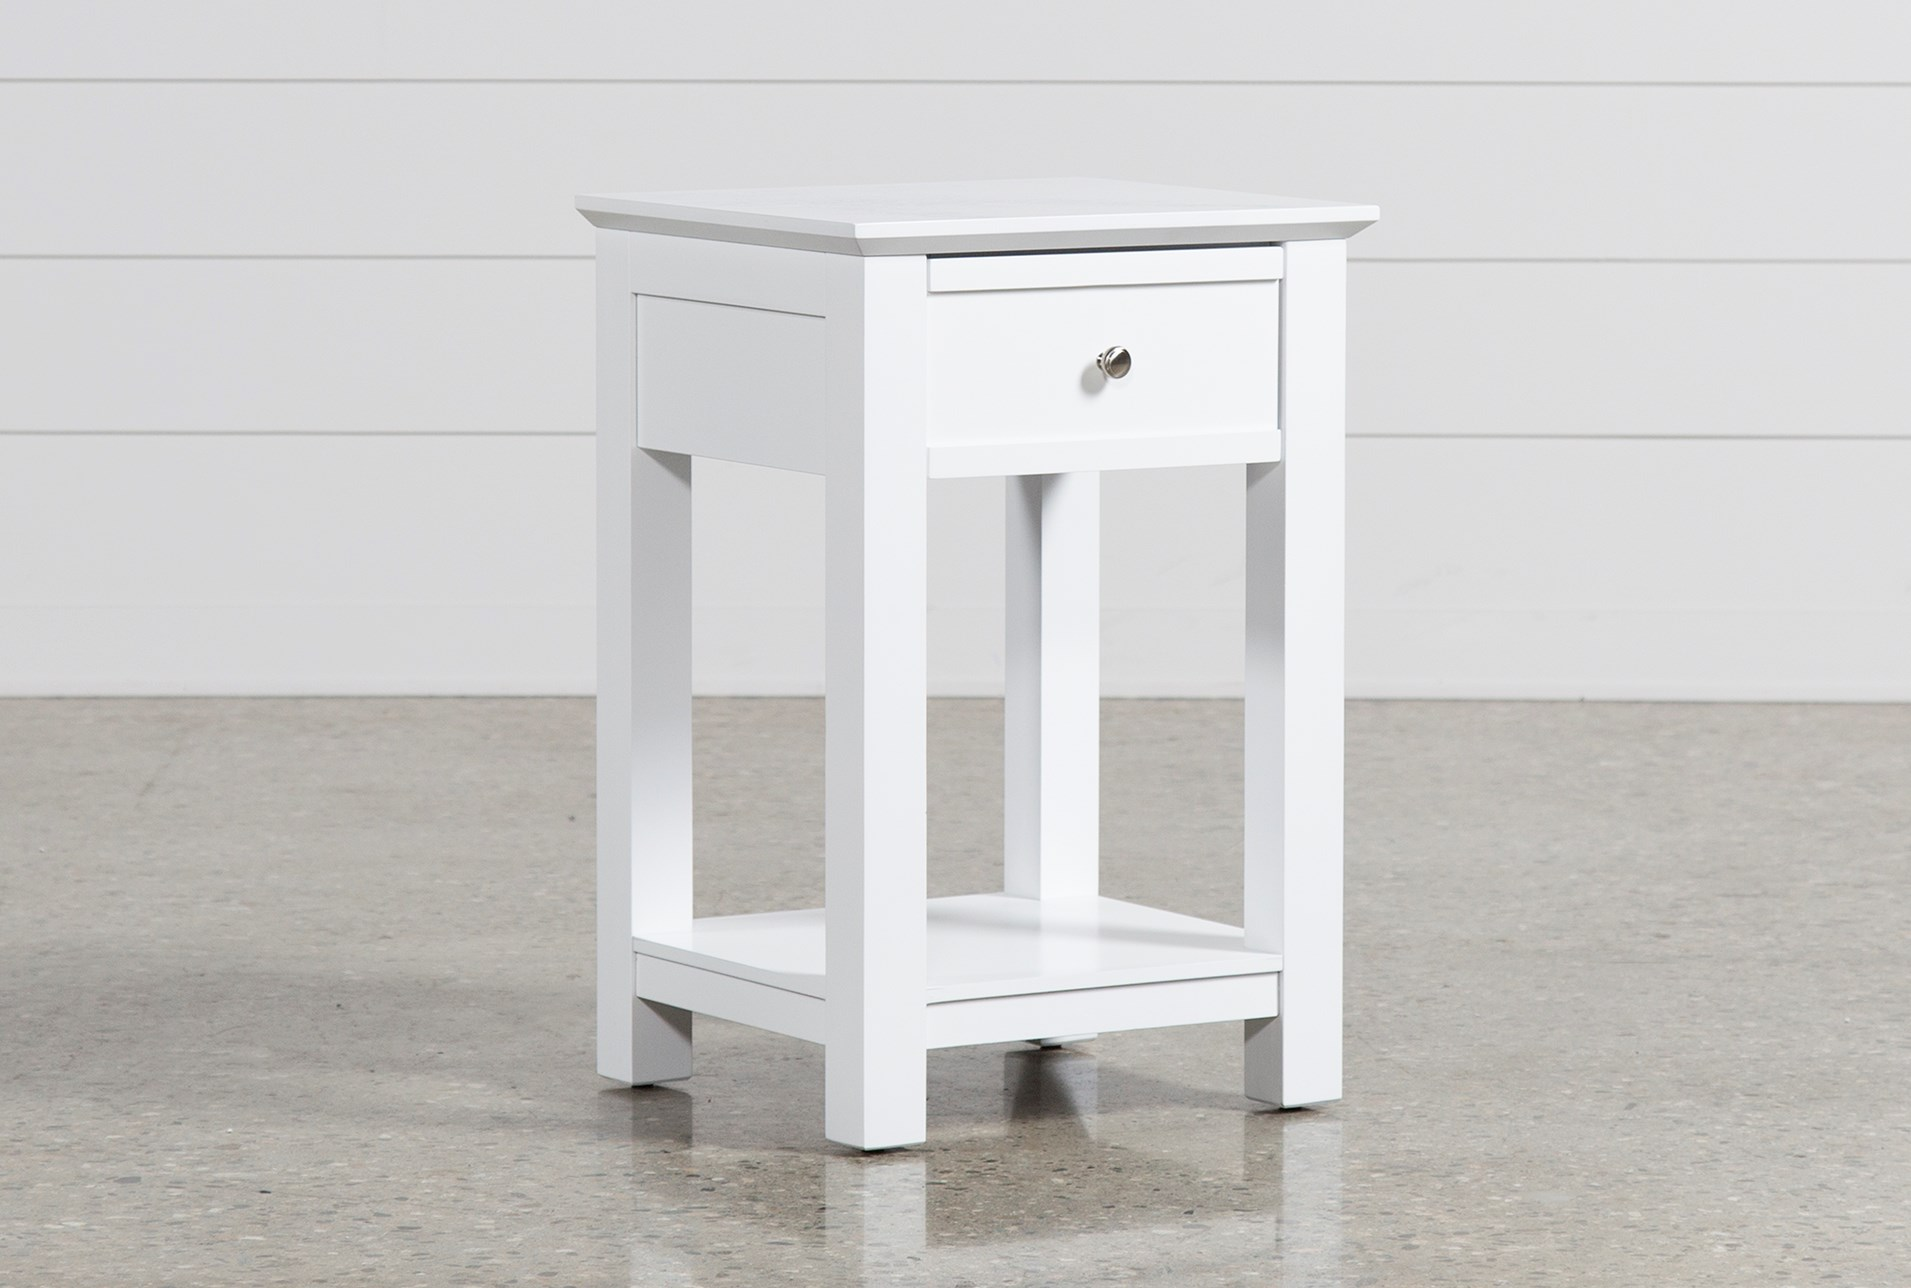 nightstands to fit any home décor | living spaces Images of Nightstands